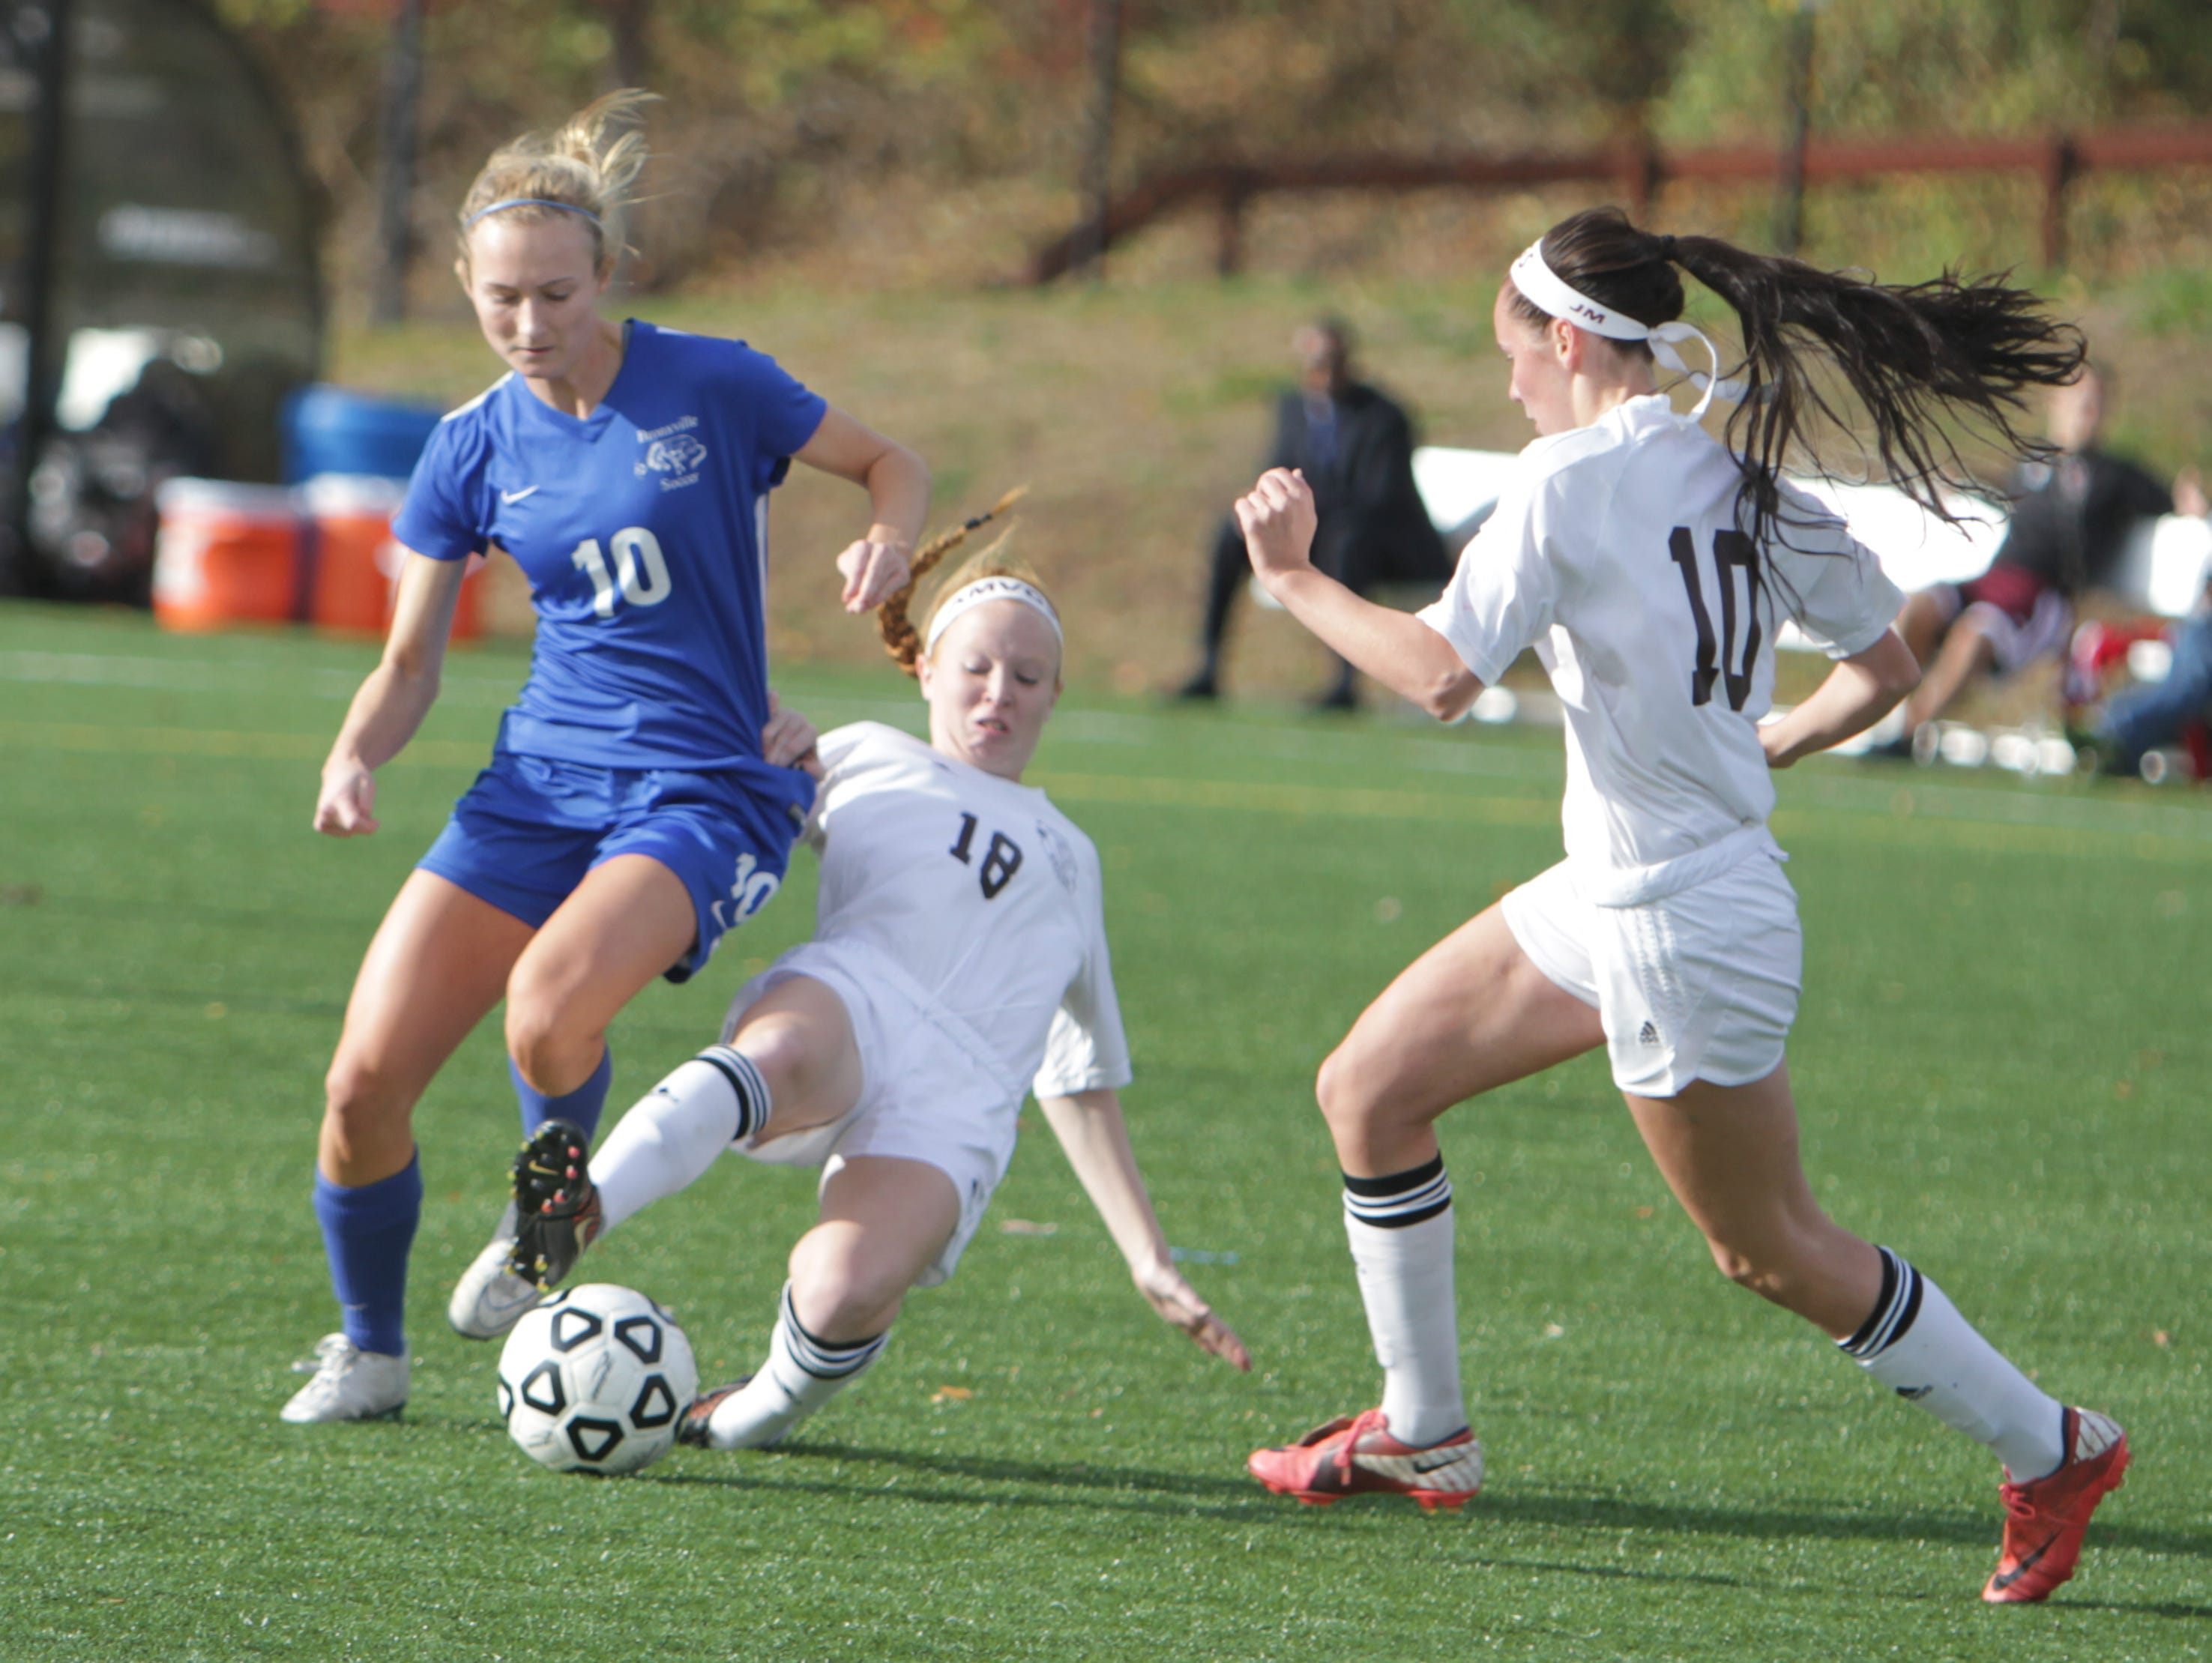 Albertus Magnus' Carly Clinton attempts a slide tackle on Bronxville's Mason Warble during a Section 1, Class B semifinal game at the Orangetown Soccer Field Complex on Thursday, October 29th, 2015. Albertus Magnus won 1-0.